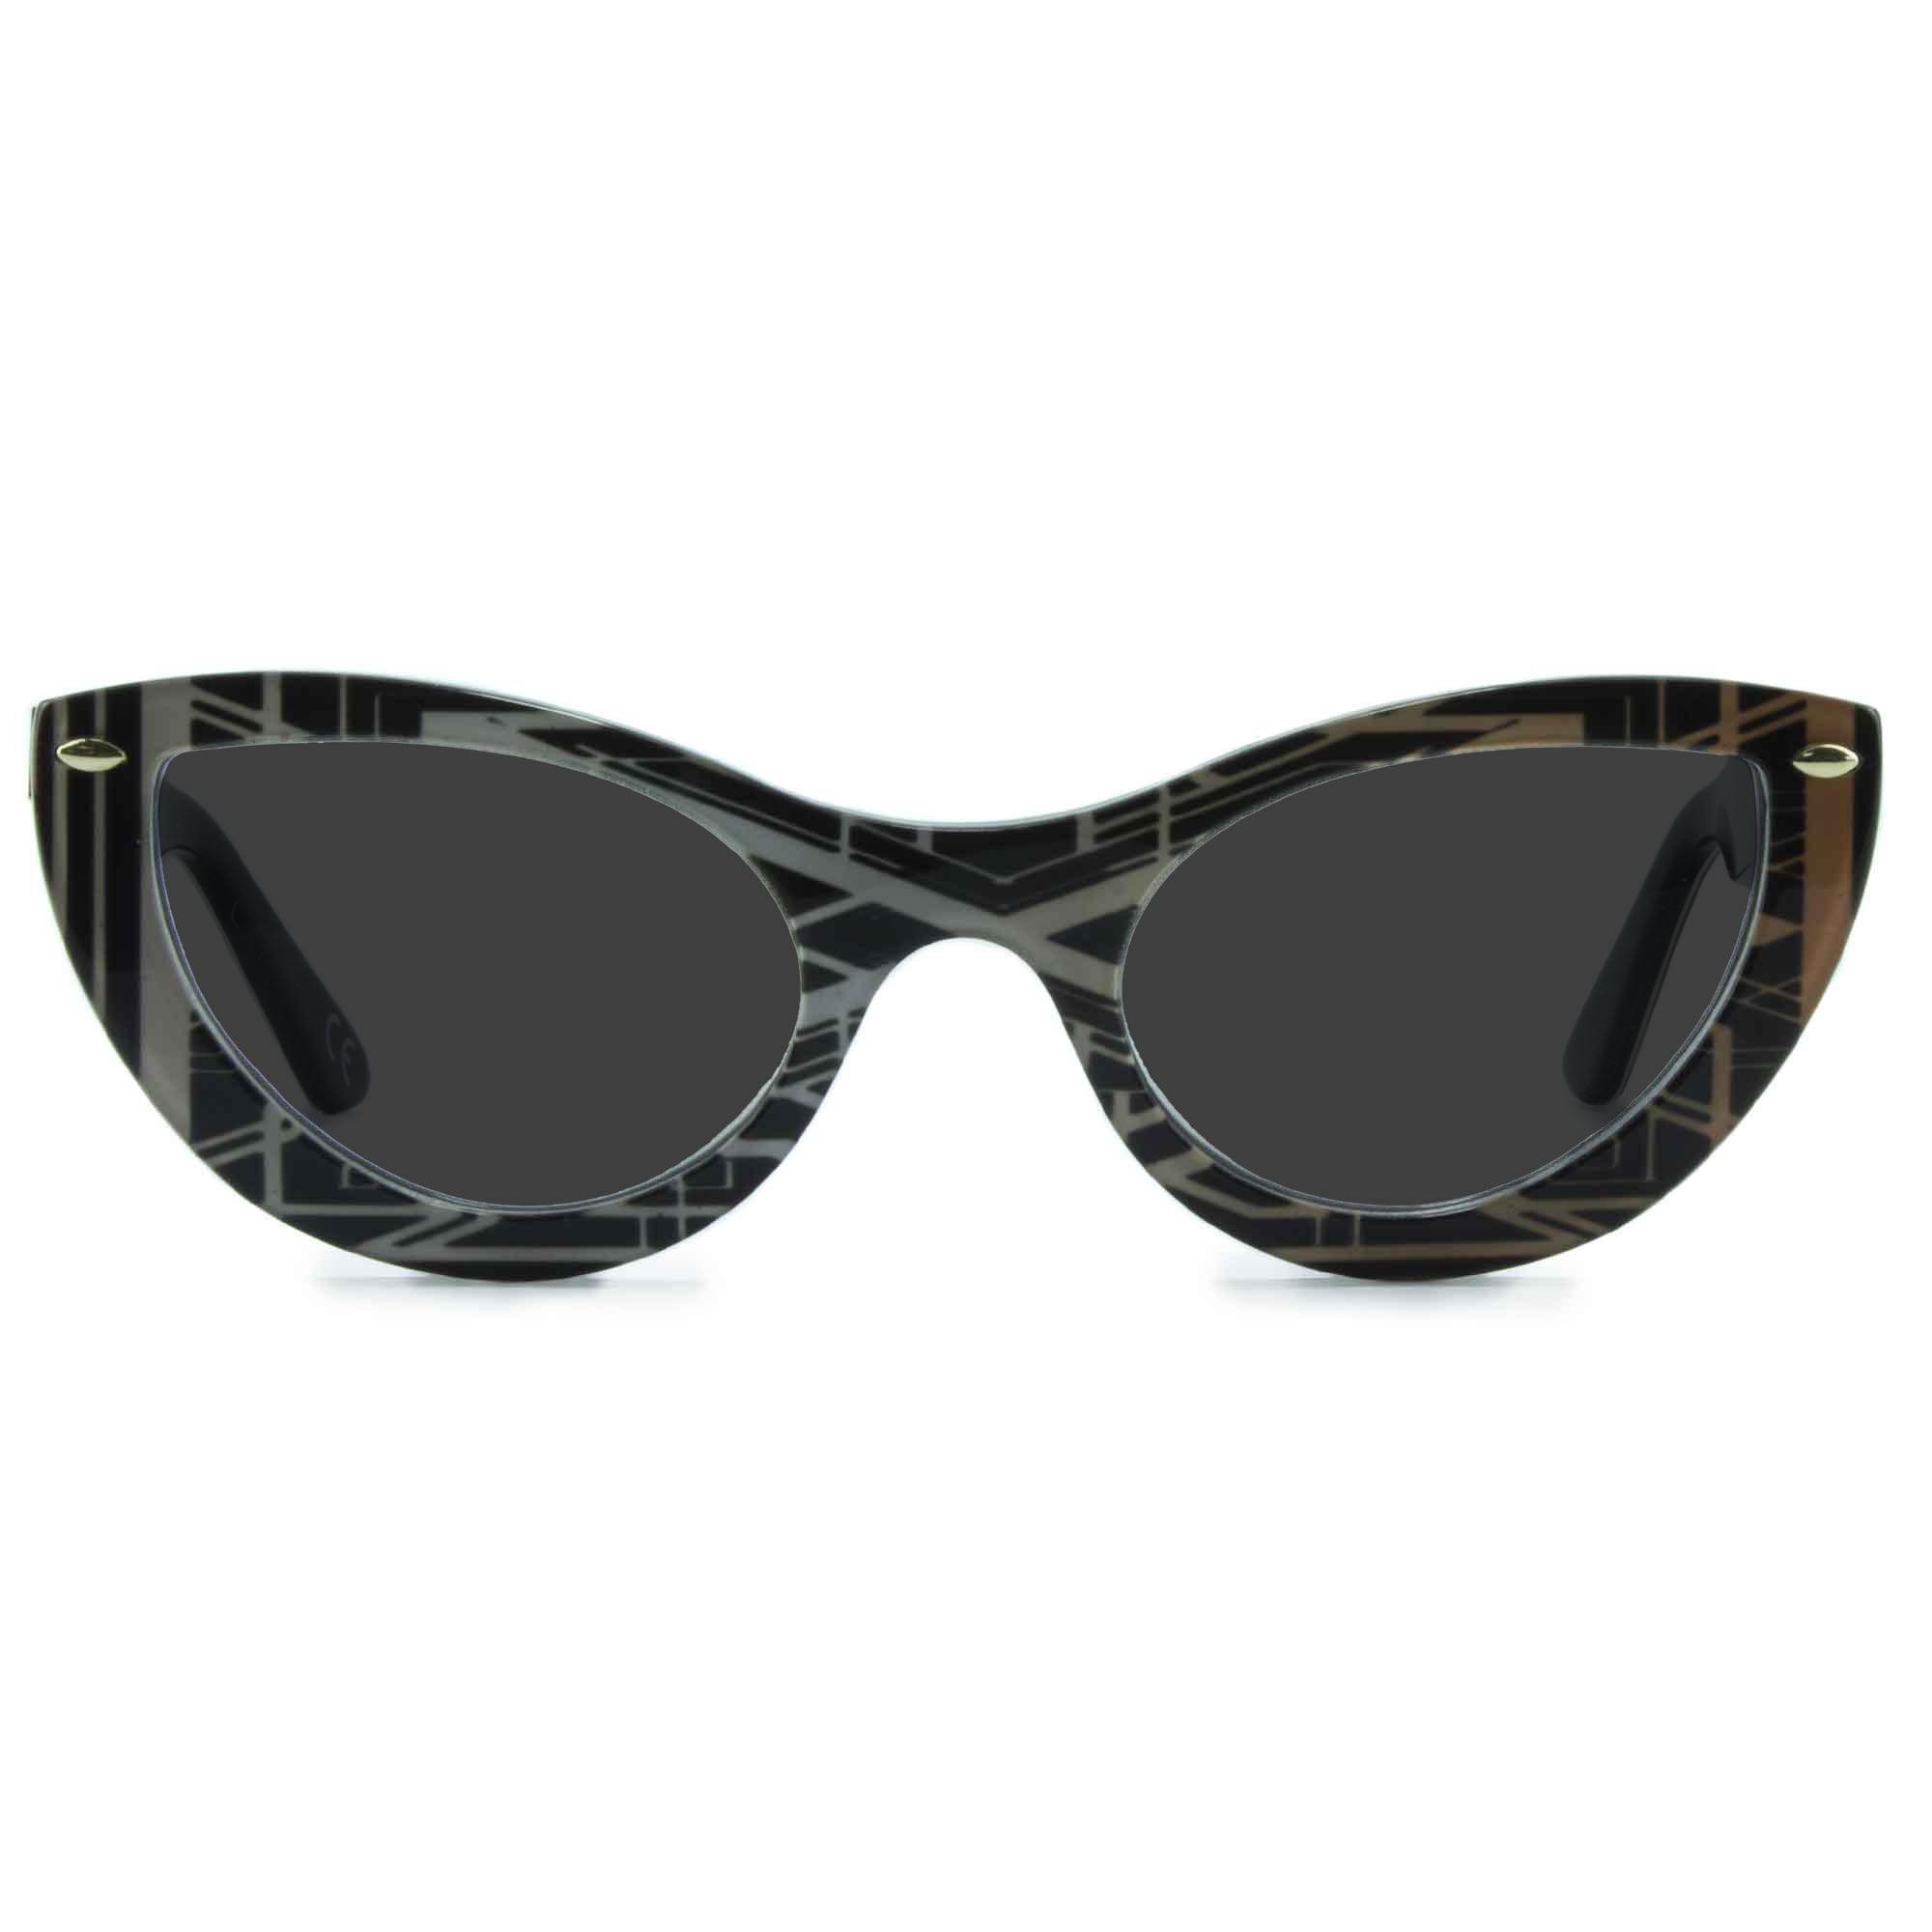 black & gold cat eye sunglasses